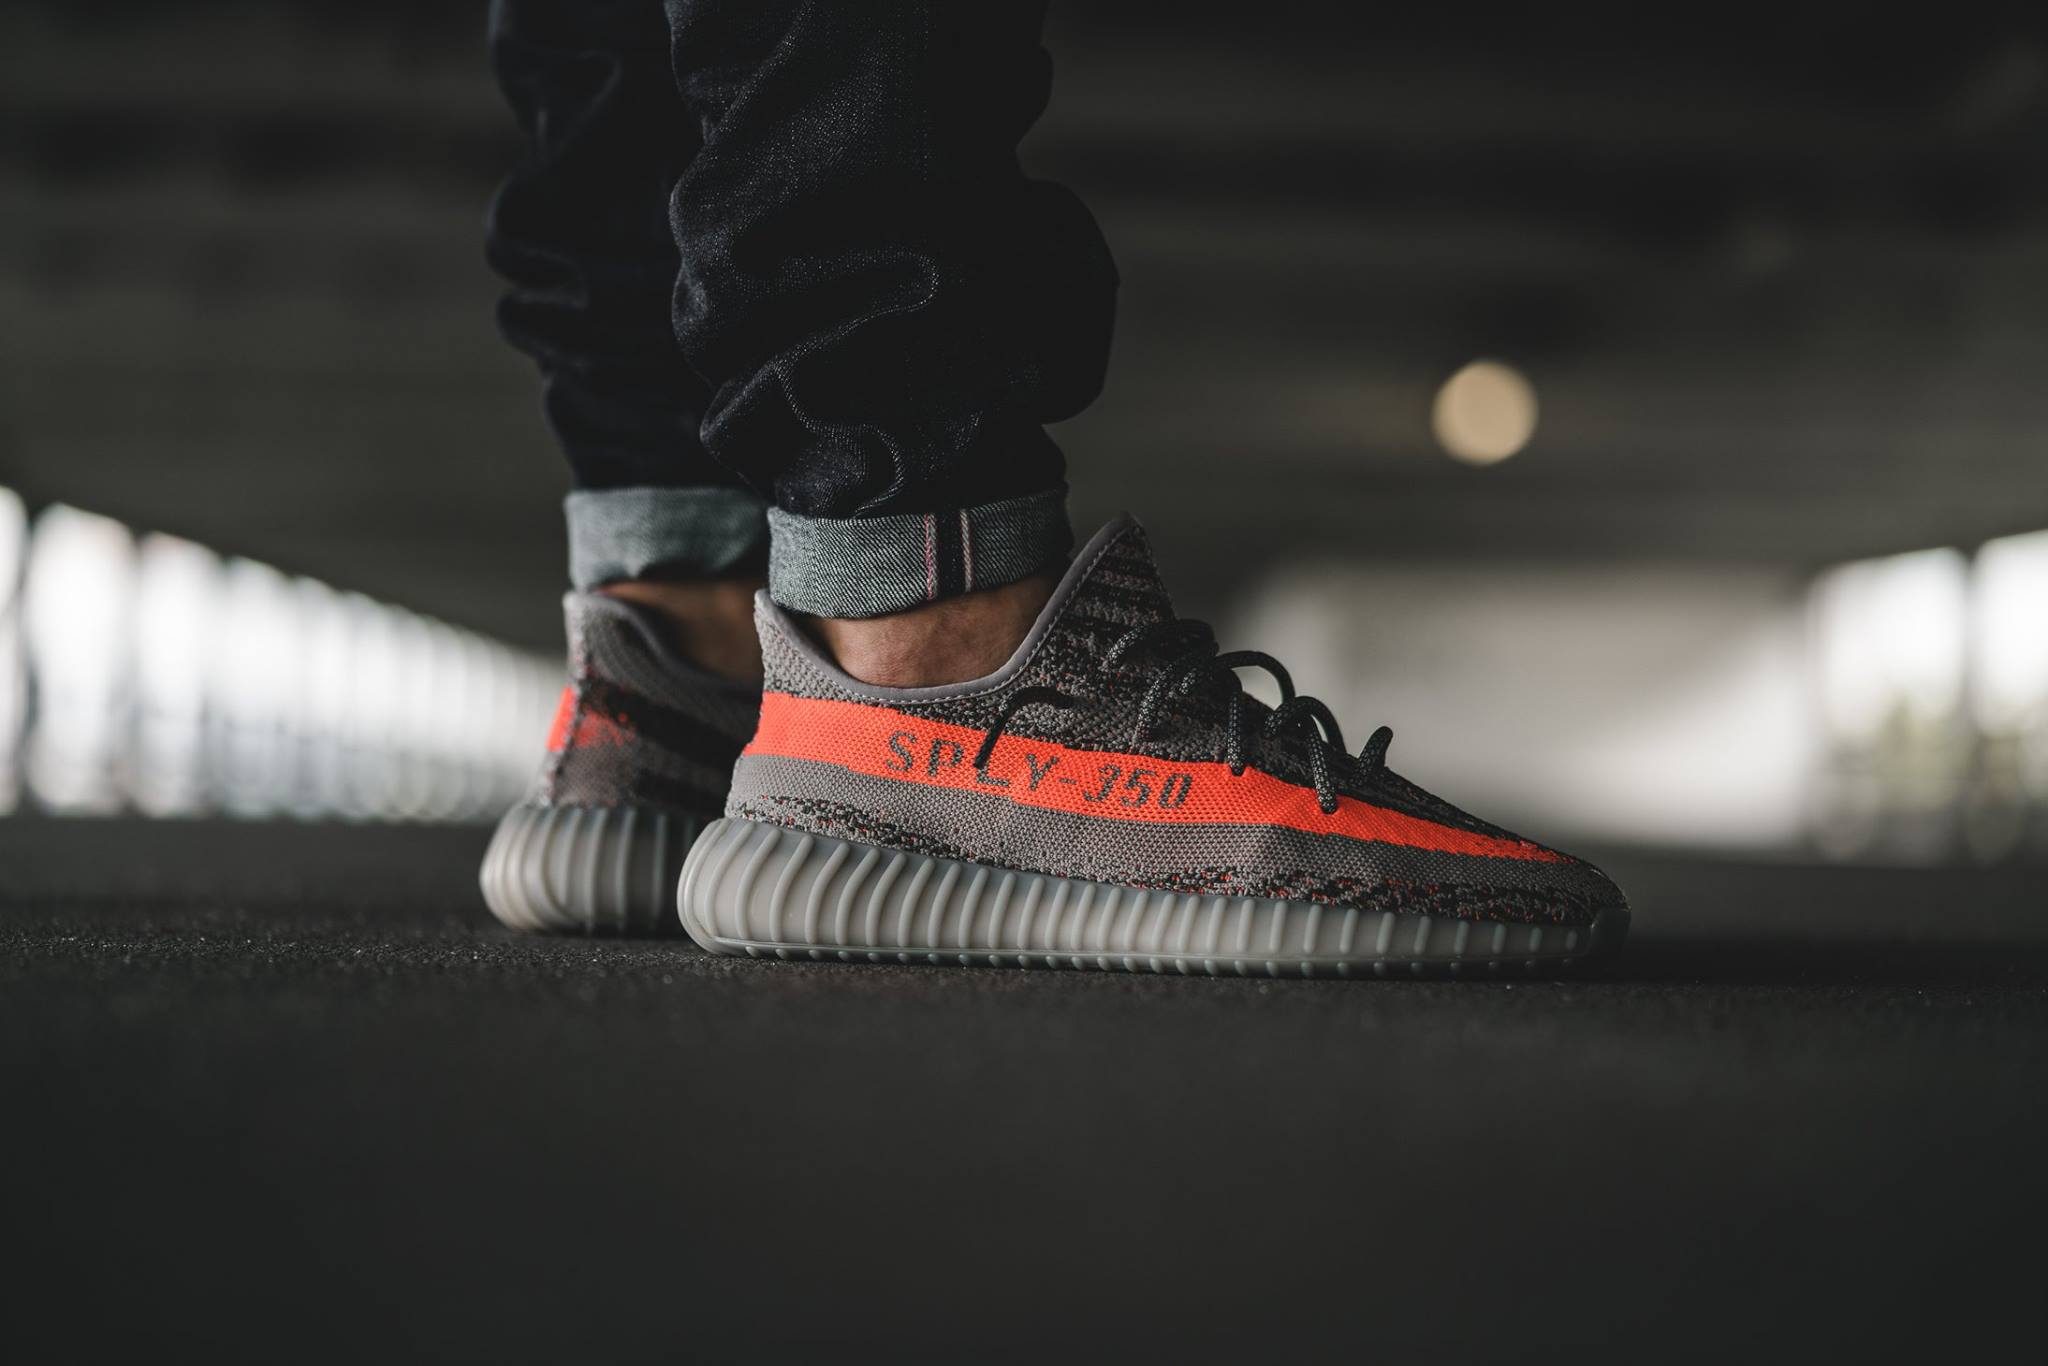 068fd9cc6937 Adidas Yeezy Boost 350 V2 Wallpapers - Wallpaper Cave